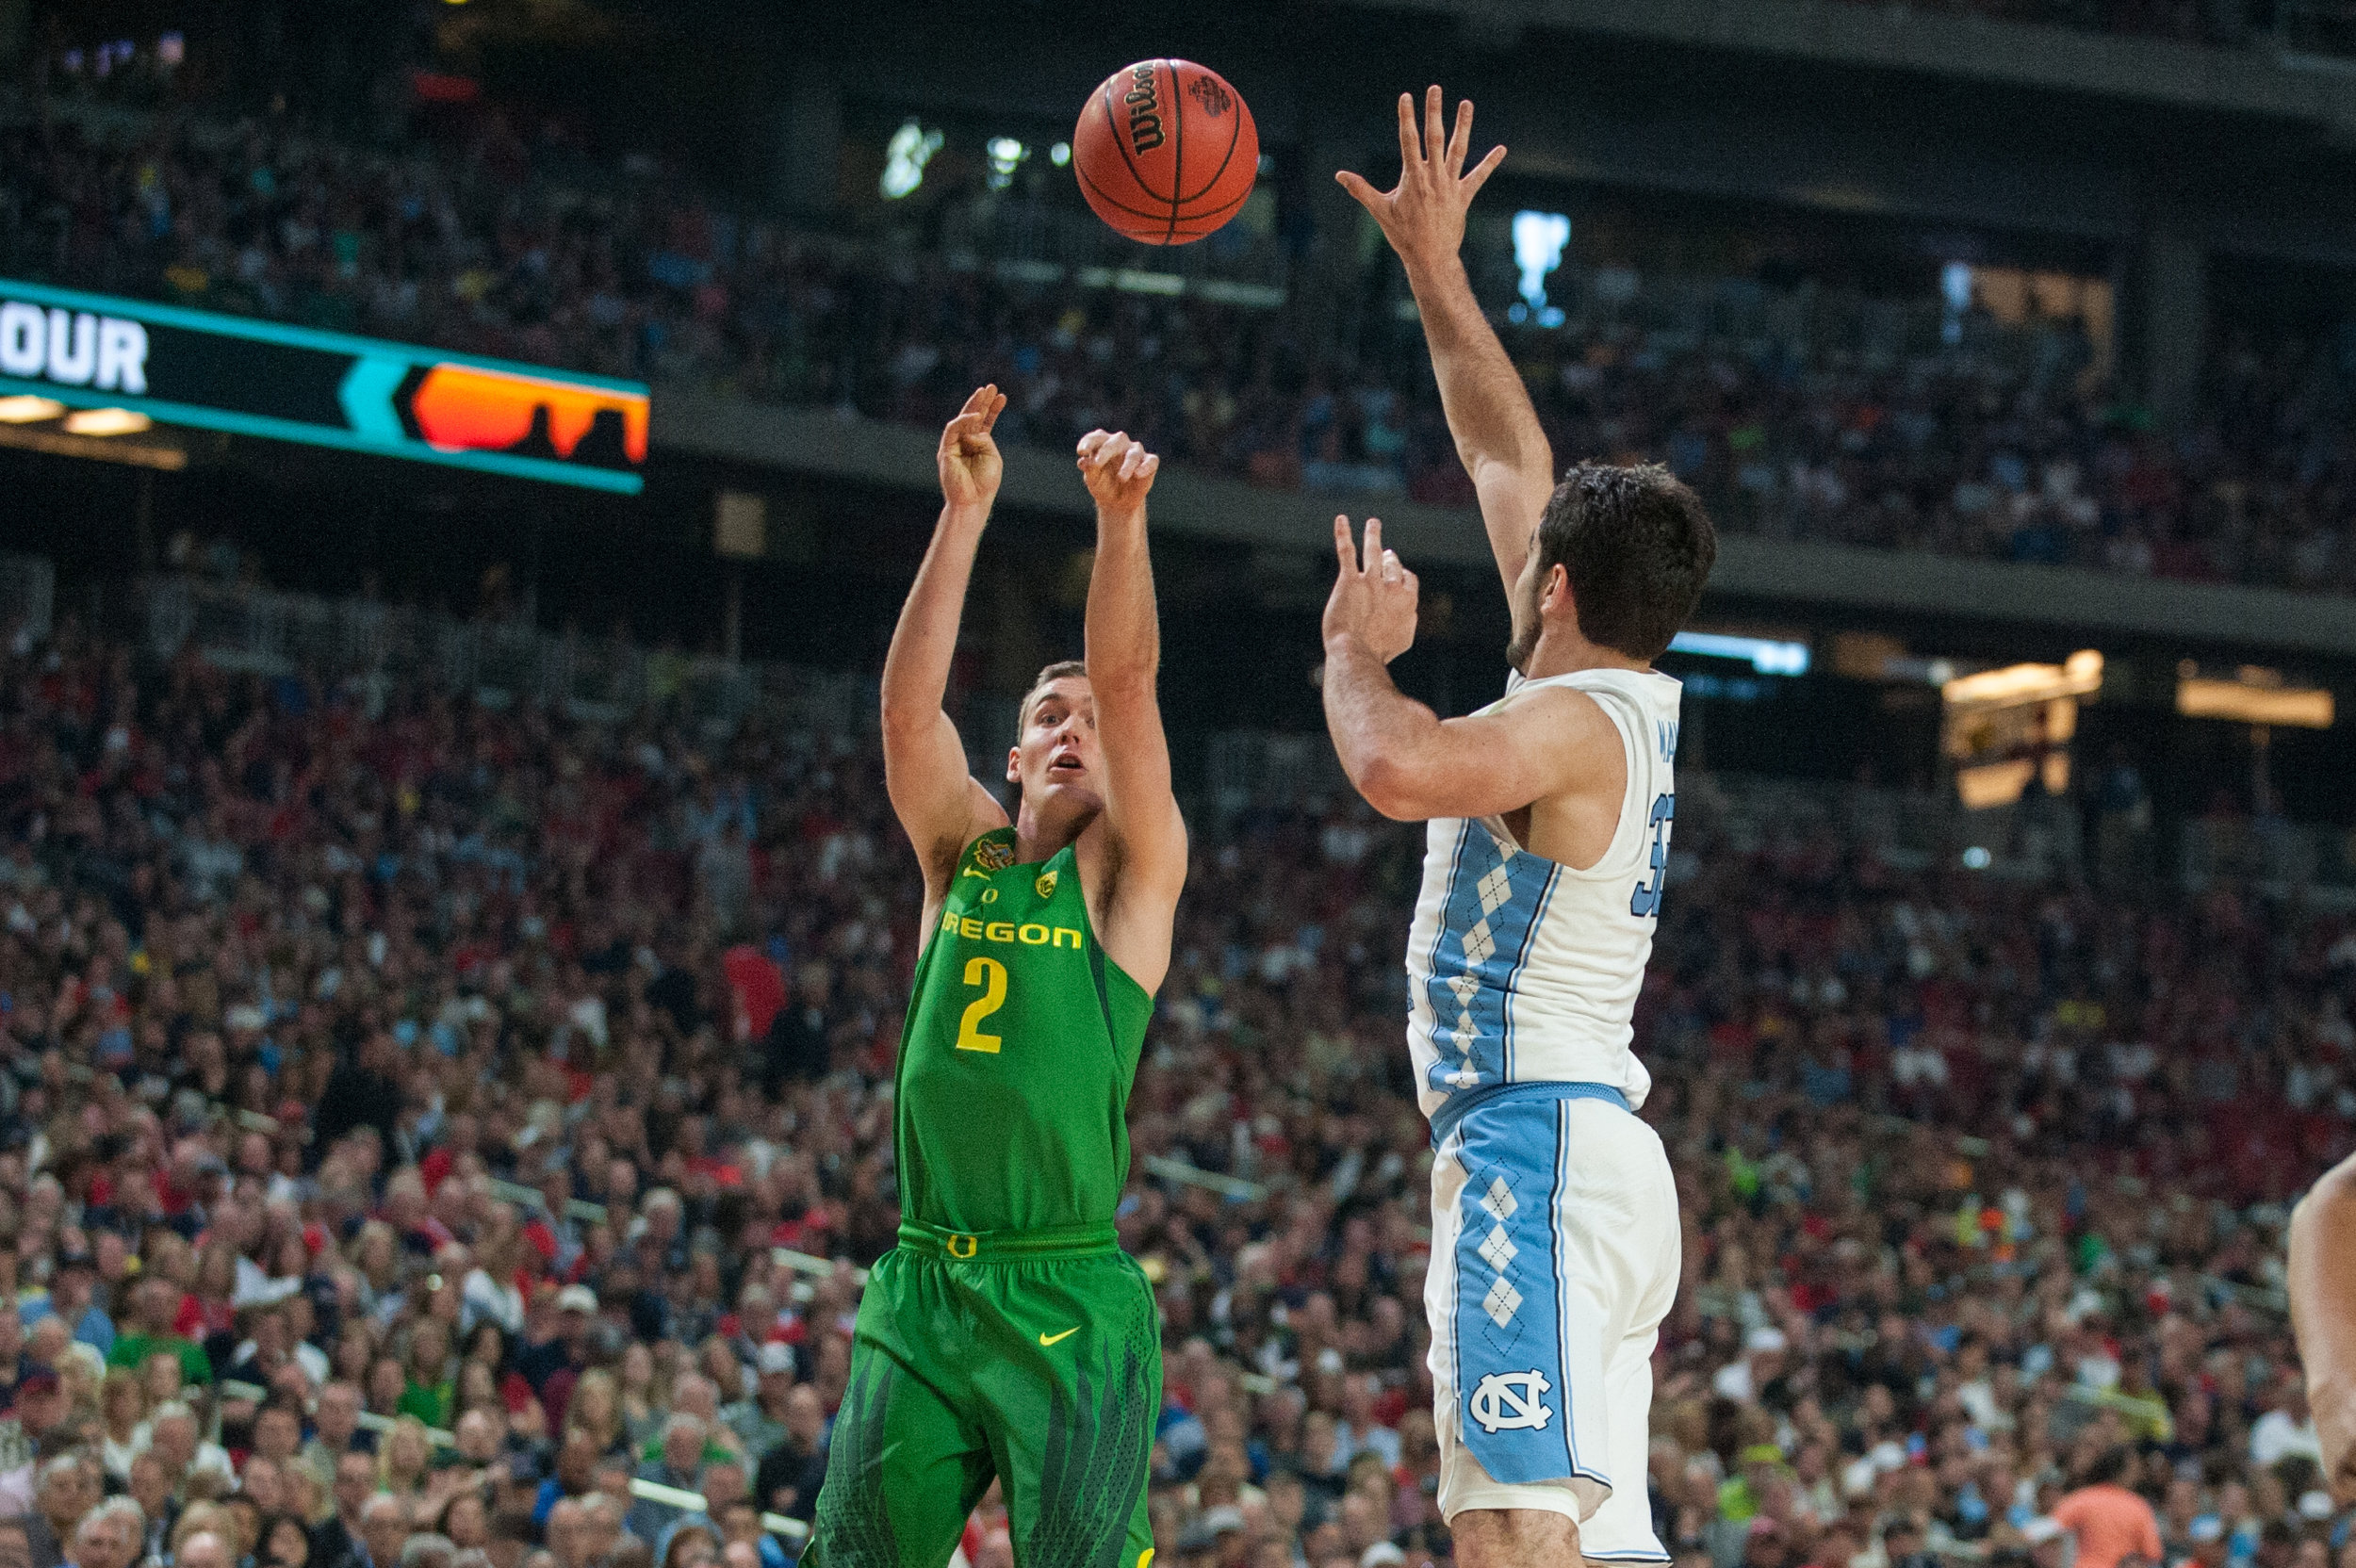 17.03.31.emg.an.final.four.oregon.vs.north.carolina-13.jpg